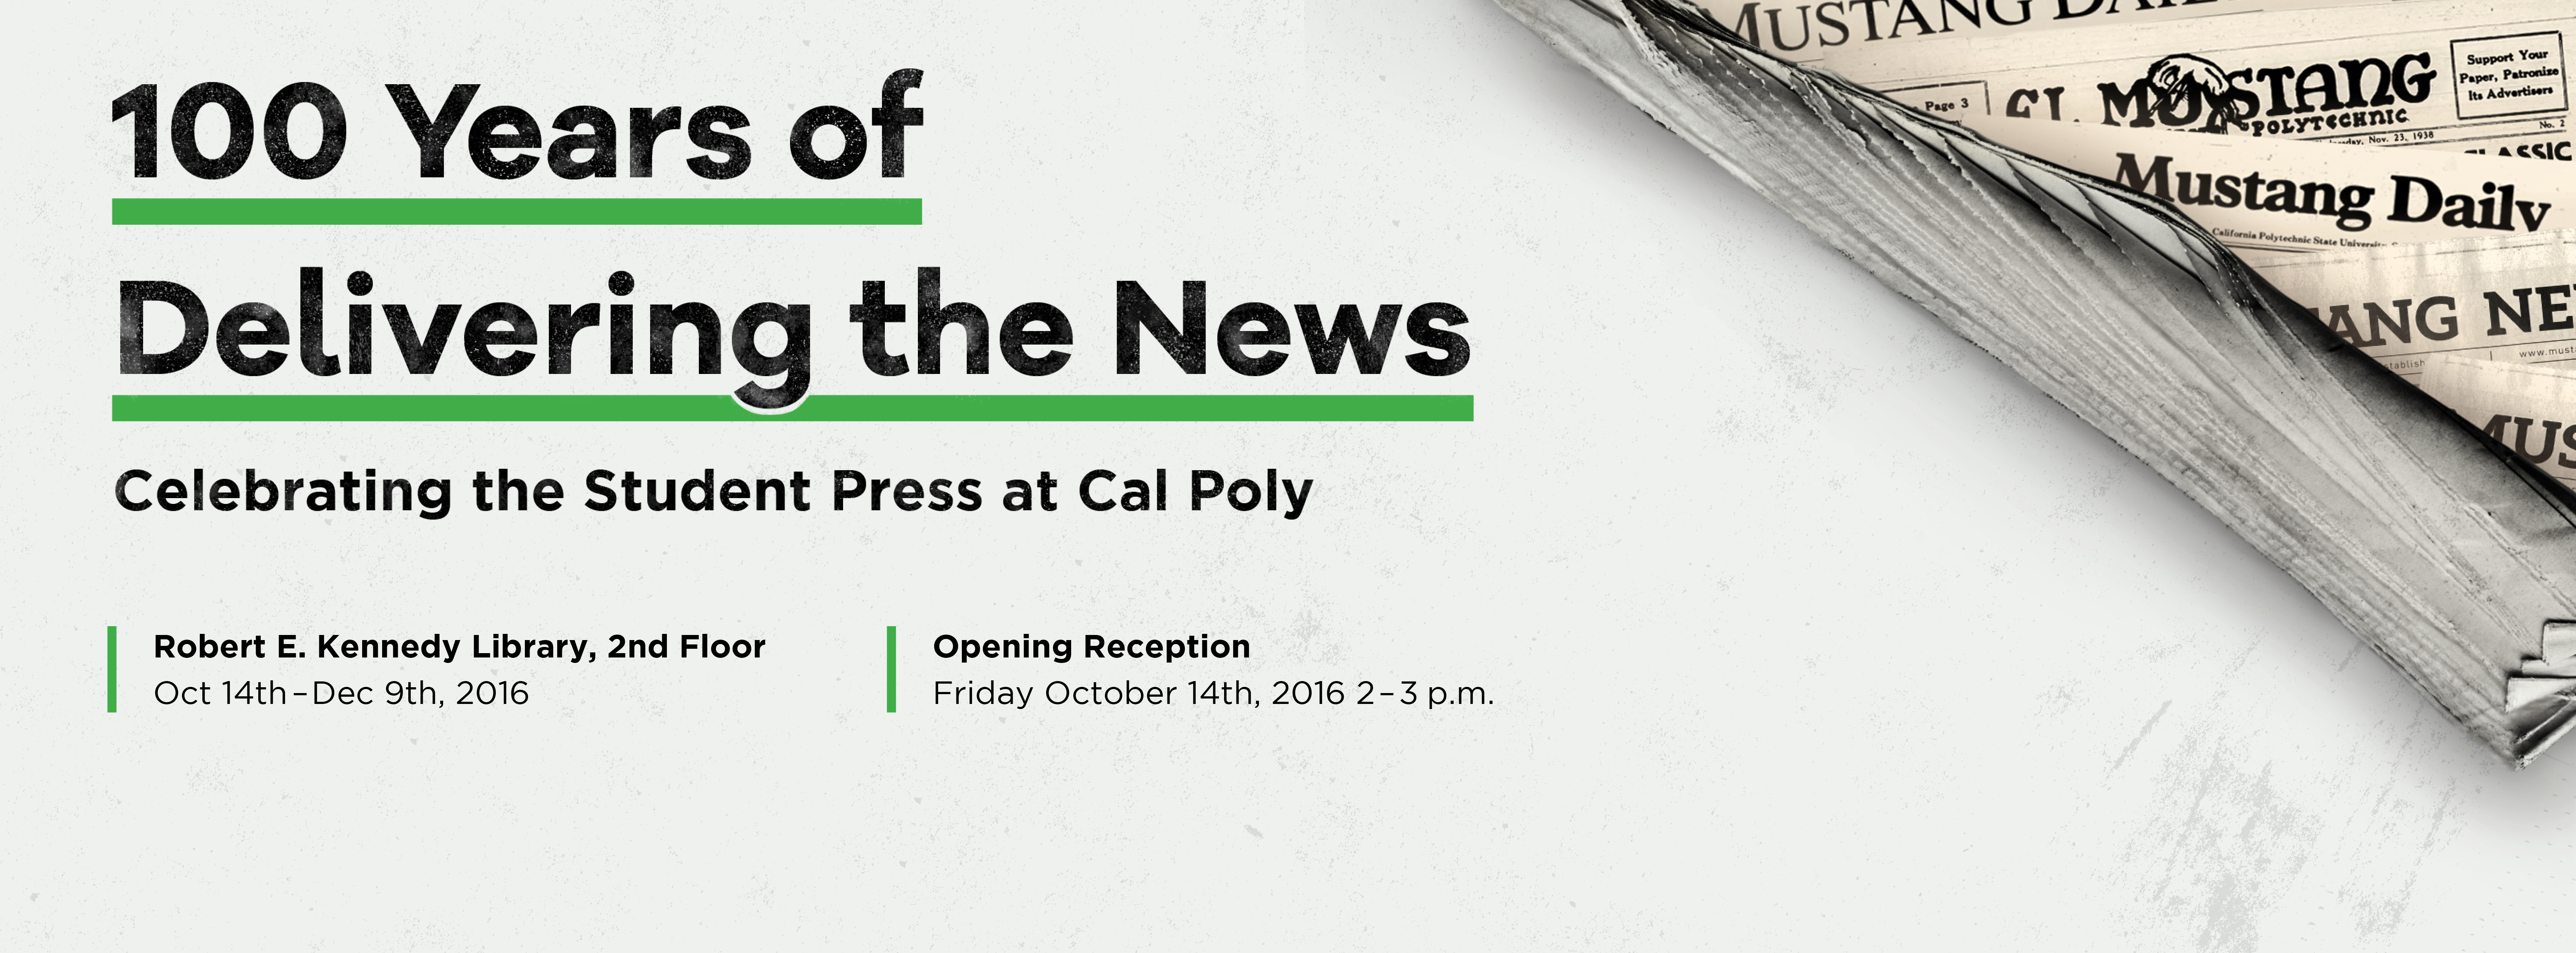 100 Years of Delivering News